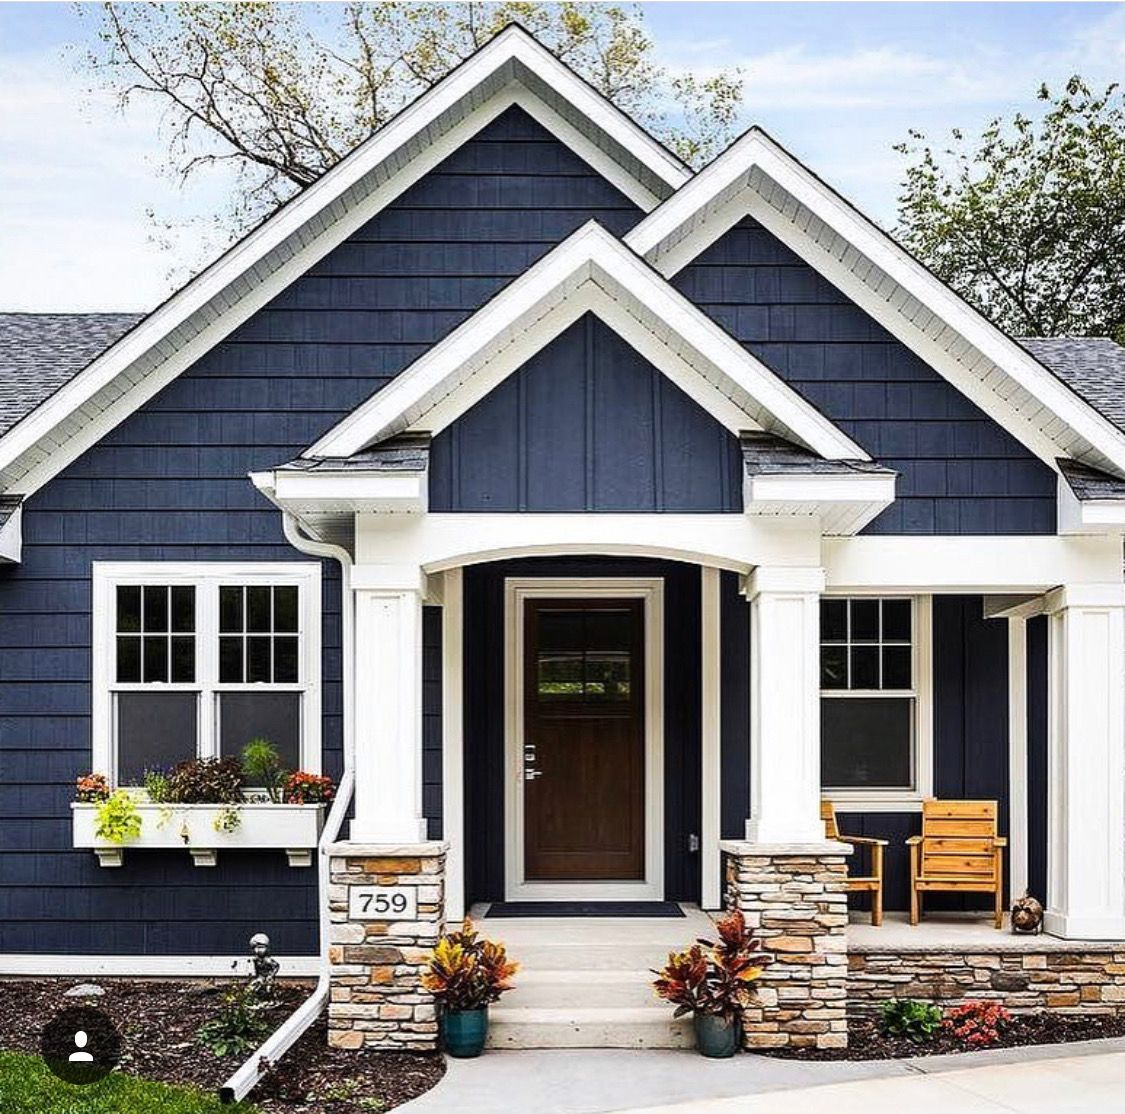 Best Color Combinations For Home Exterior: Exterior House Colors, House Colors